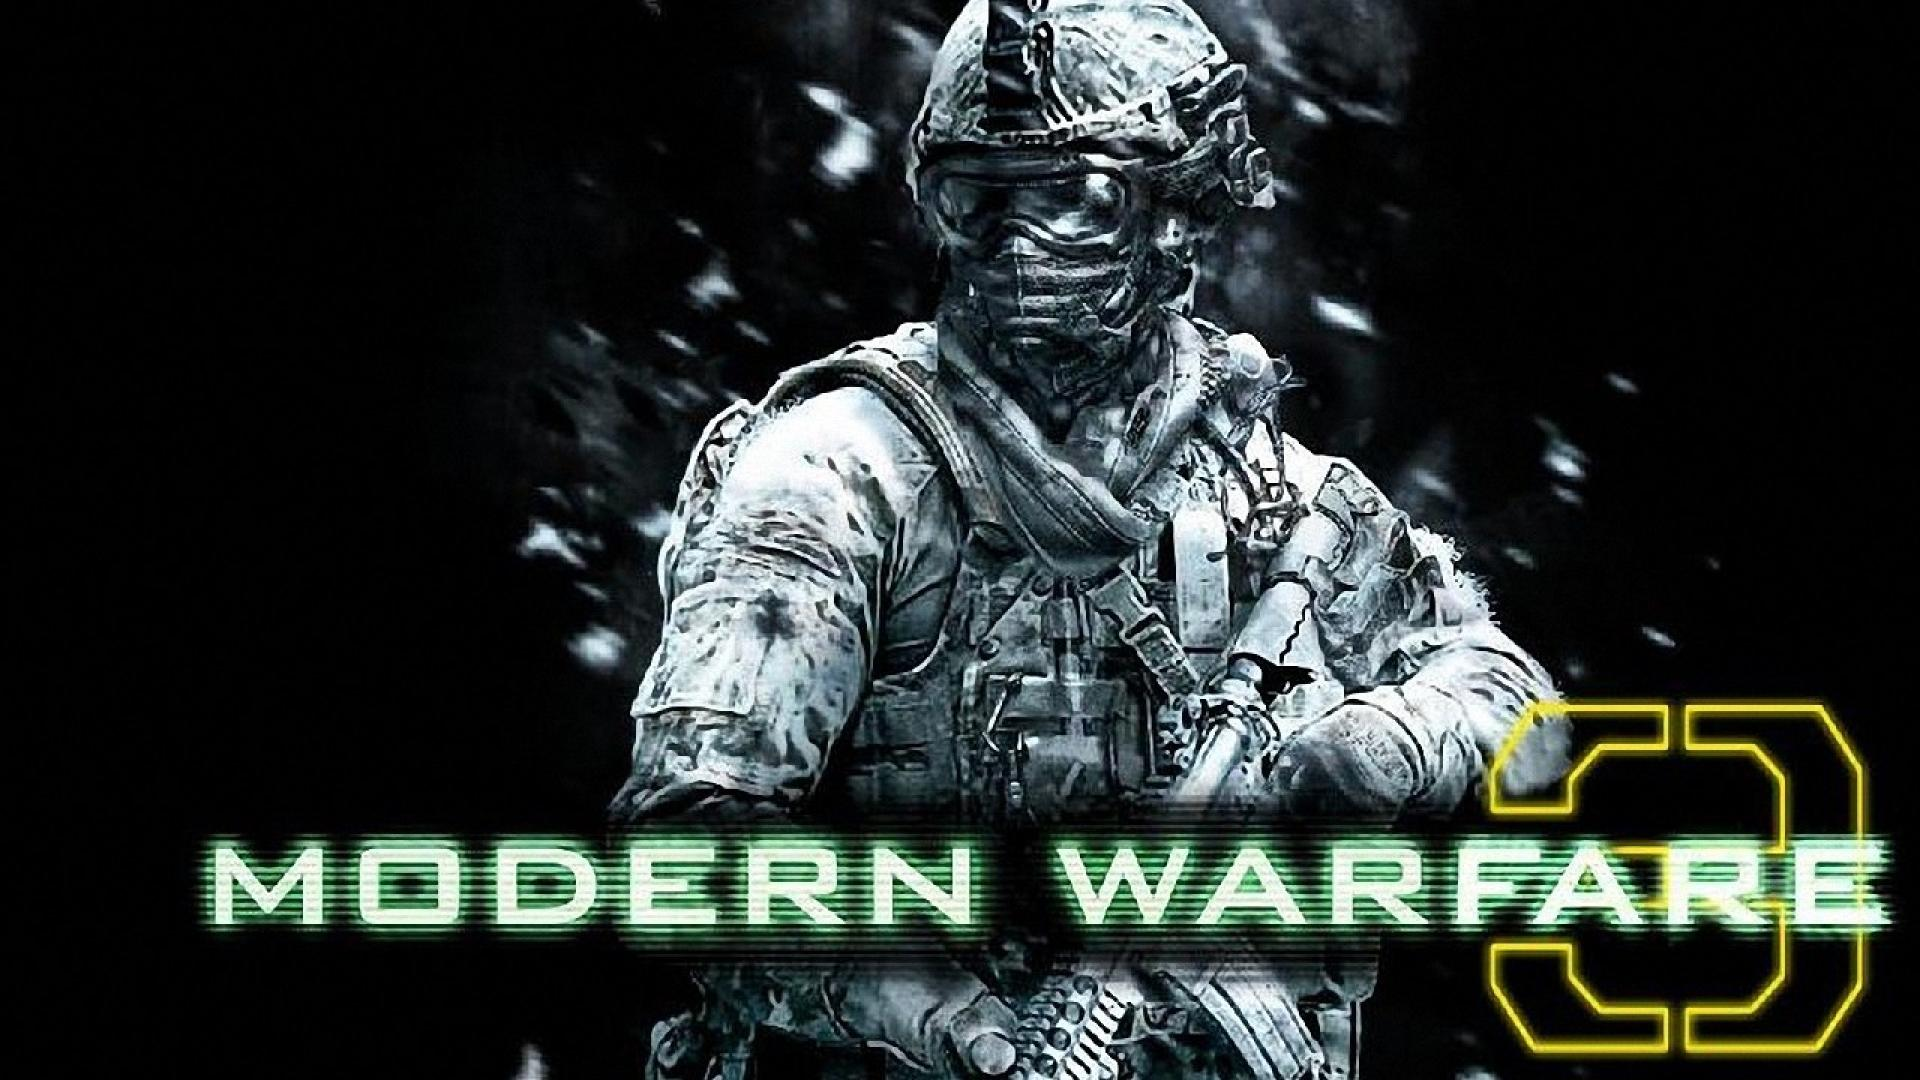 Modern Warfare 3 Wallpapers Posted By Christopher Thompson